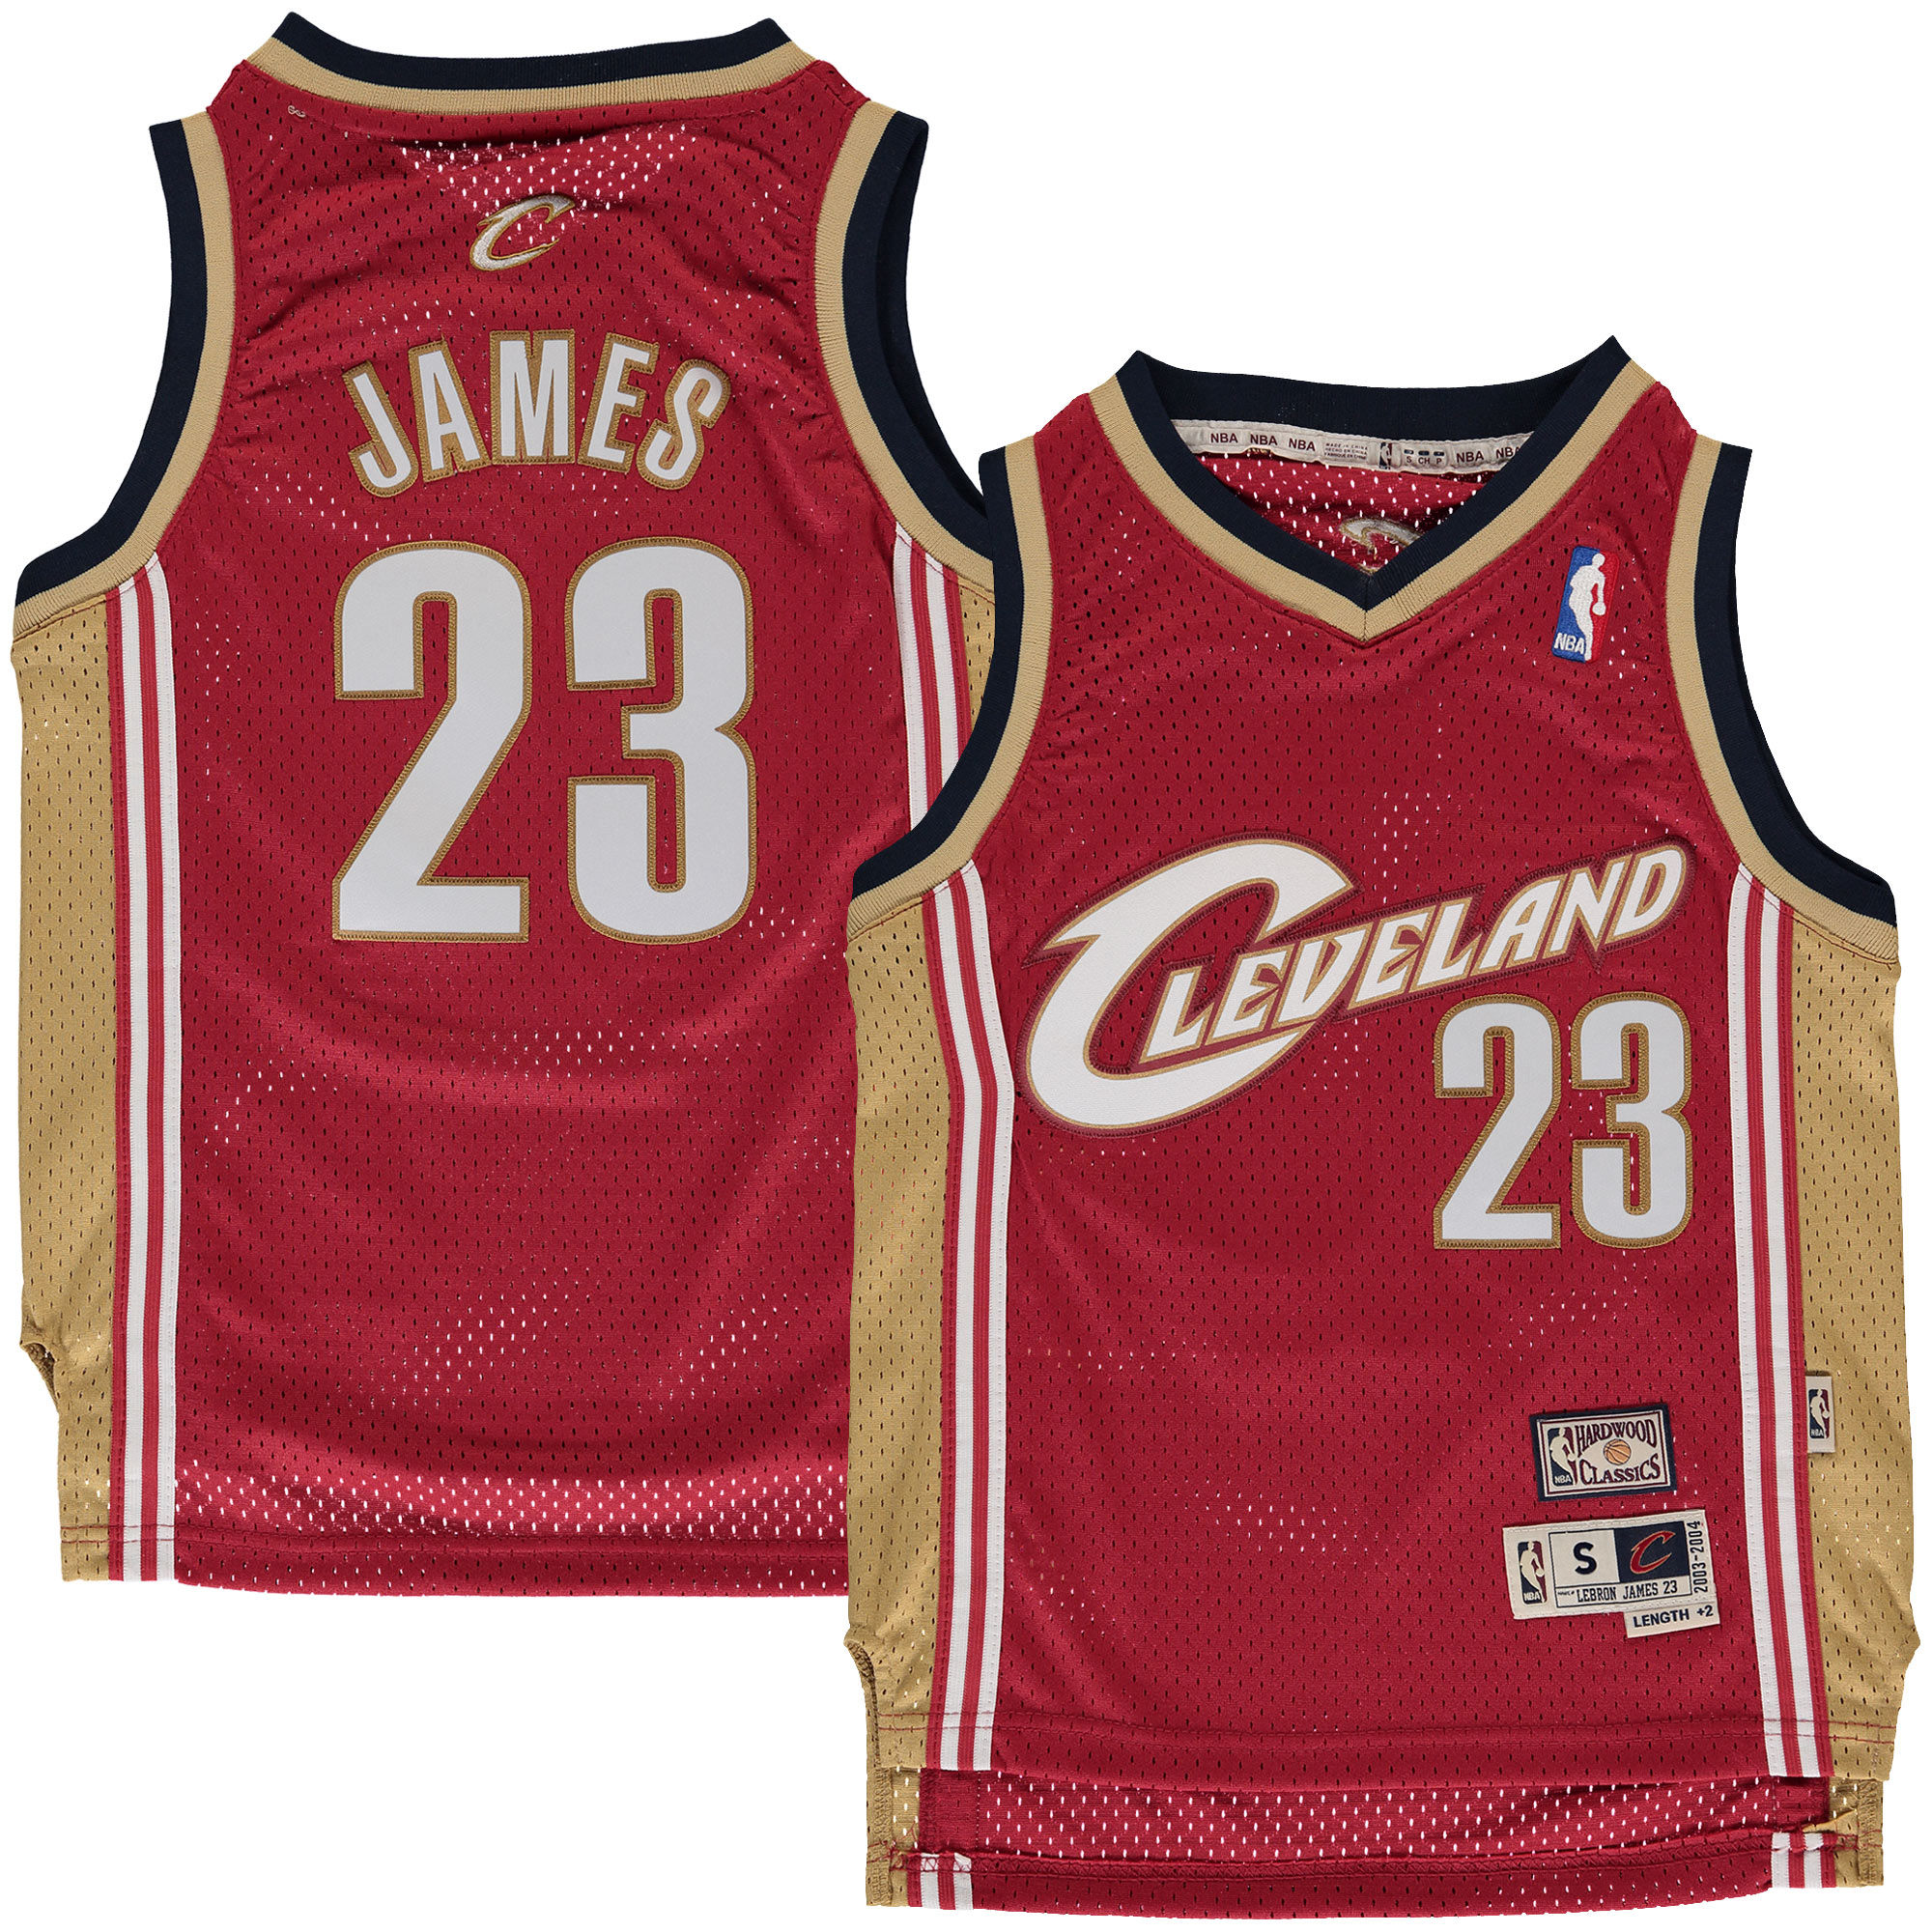 huge discount 331e5 2fd56 LeBron James Cleveland Cavaliers Mitchell & Ness Youth Hardwood Classics  Swingman Jersey - Maroon